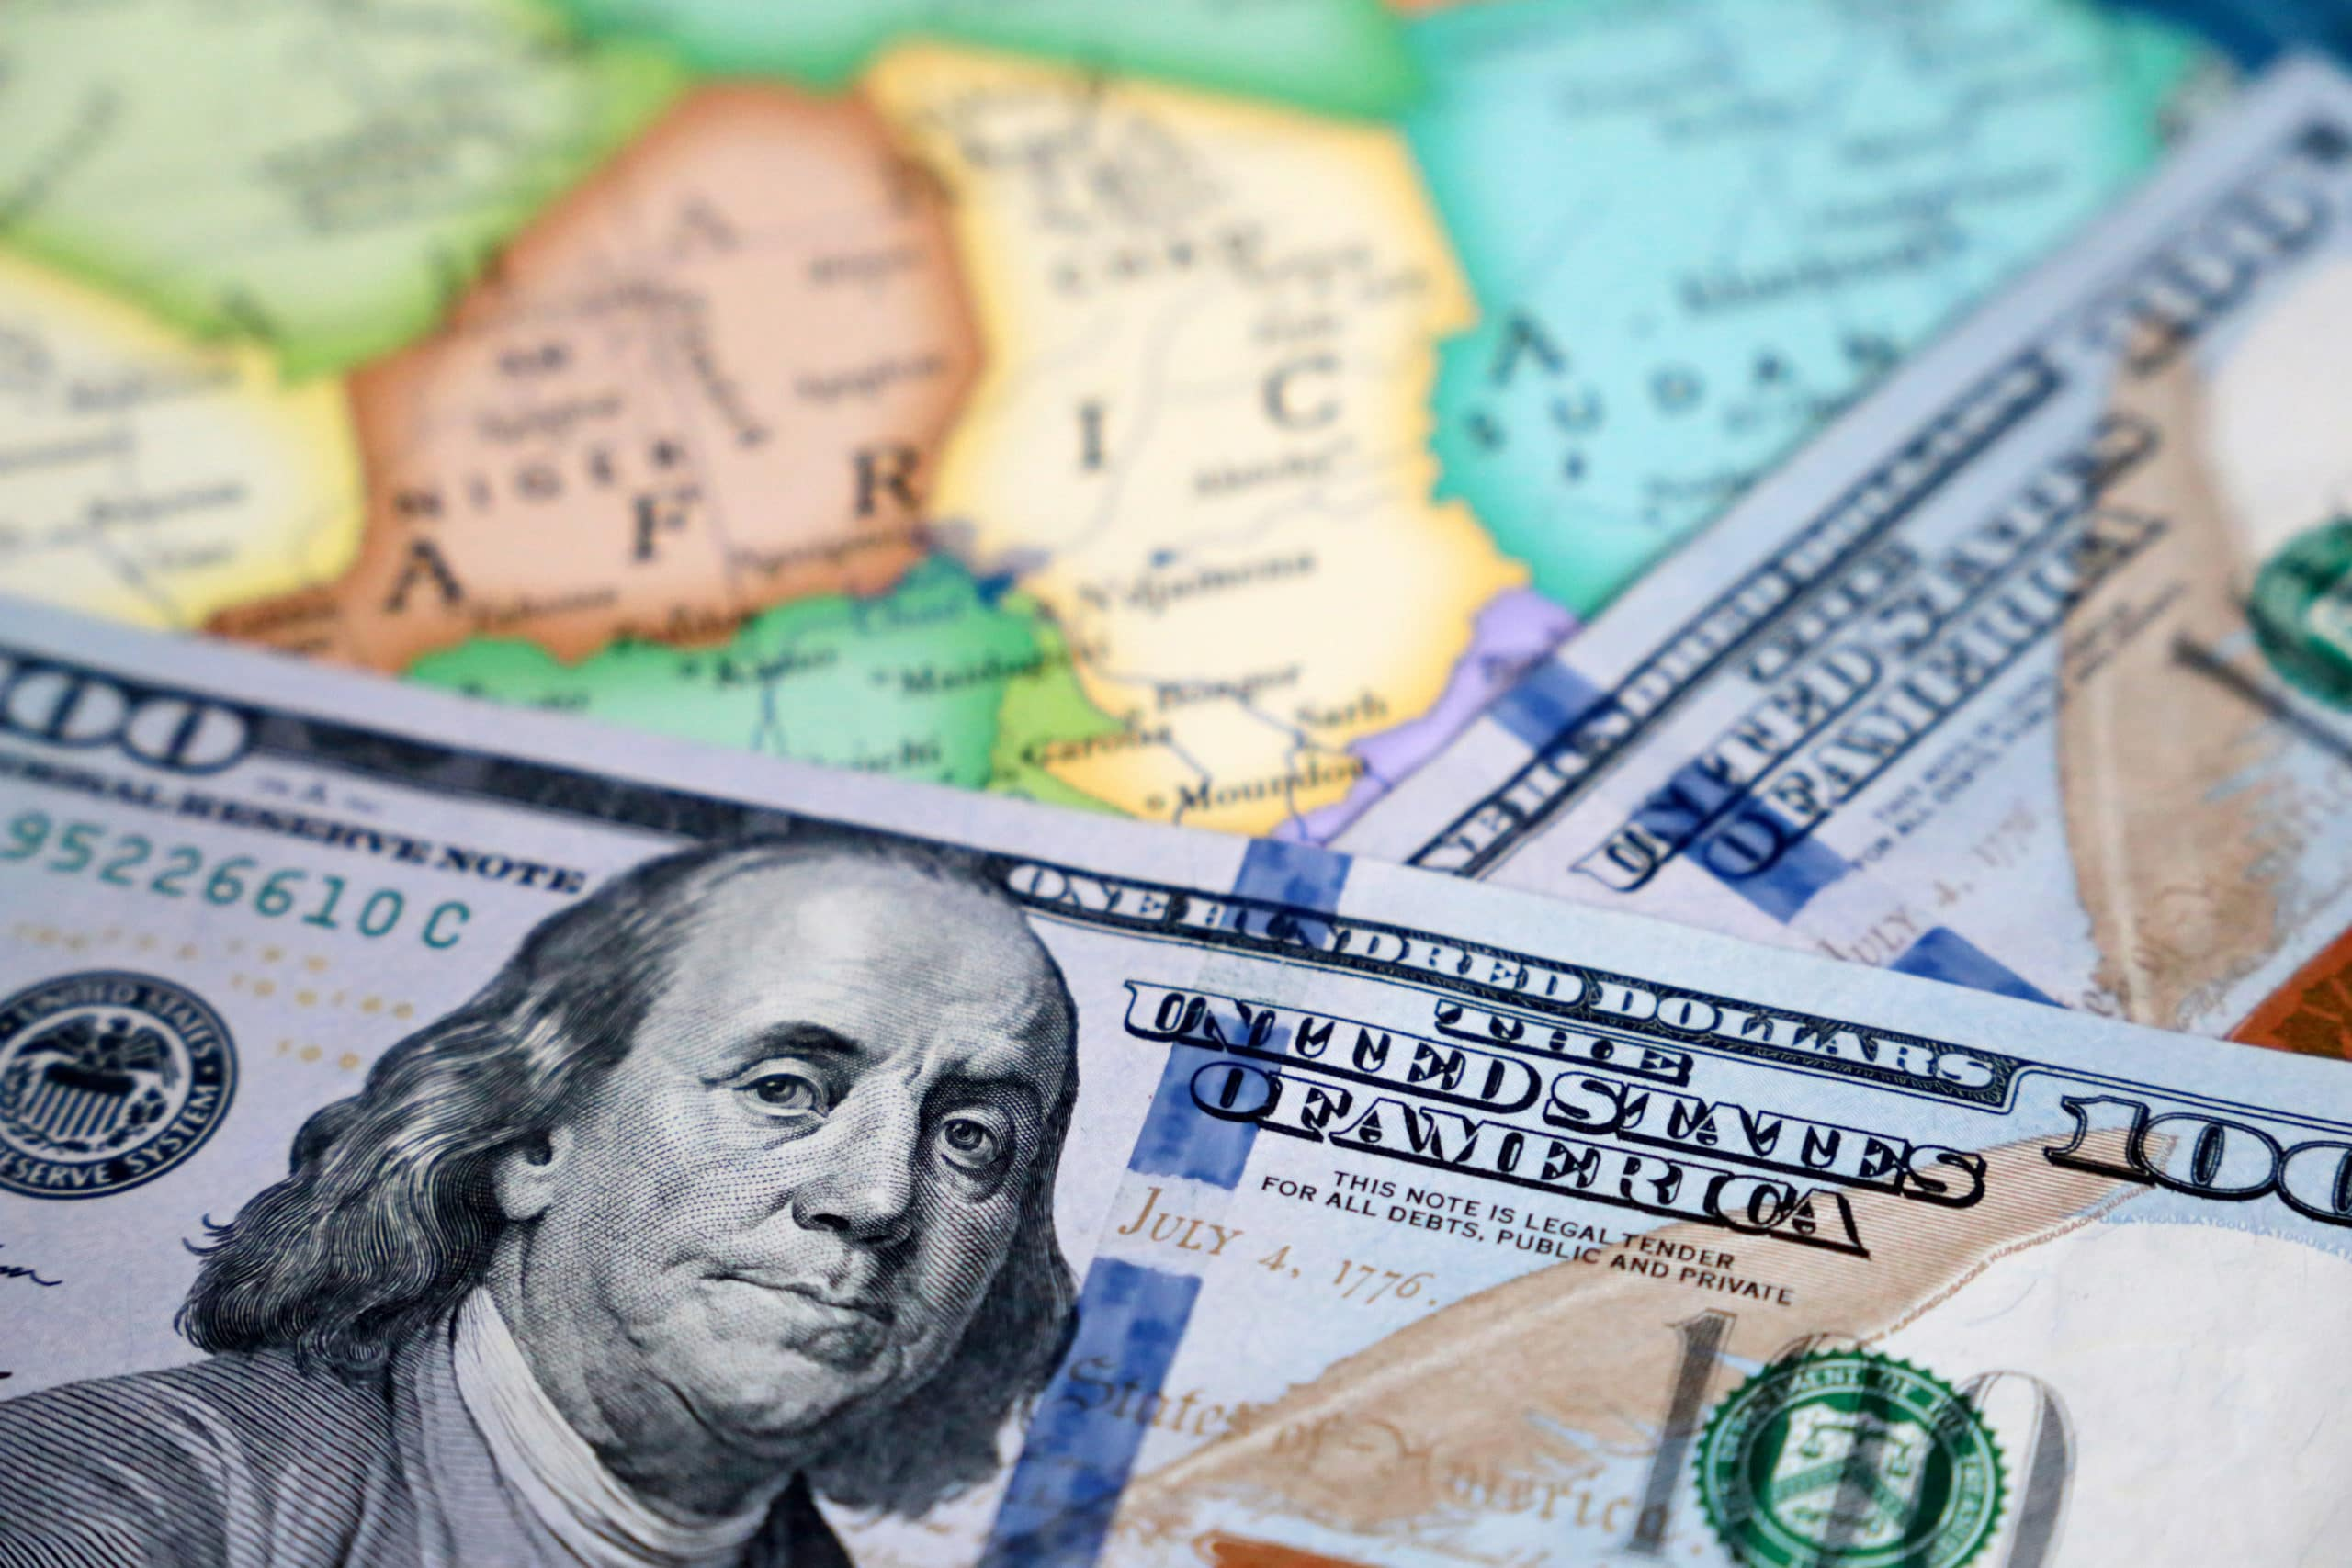 US dollar on the Africa map background